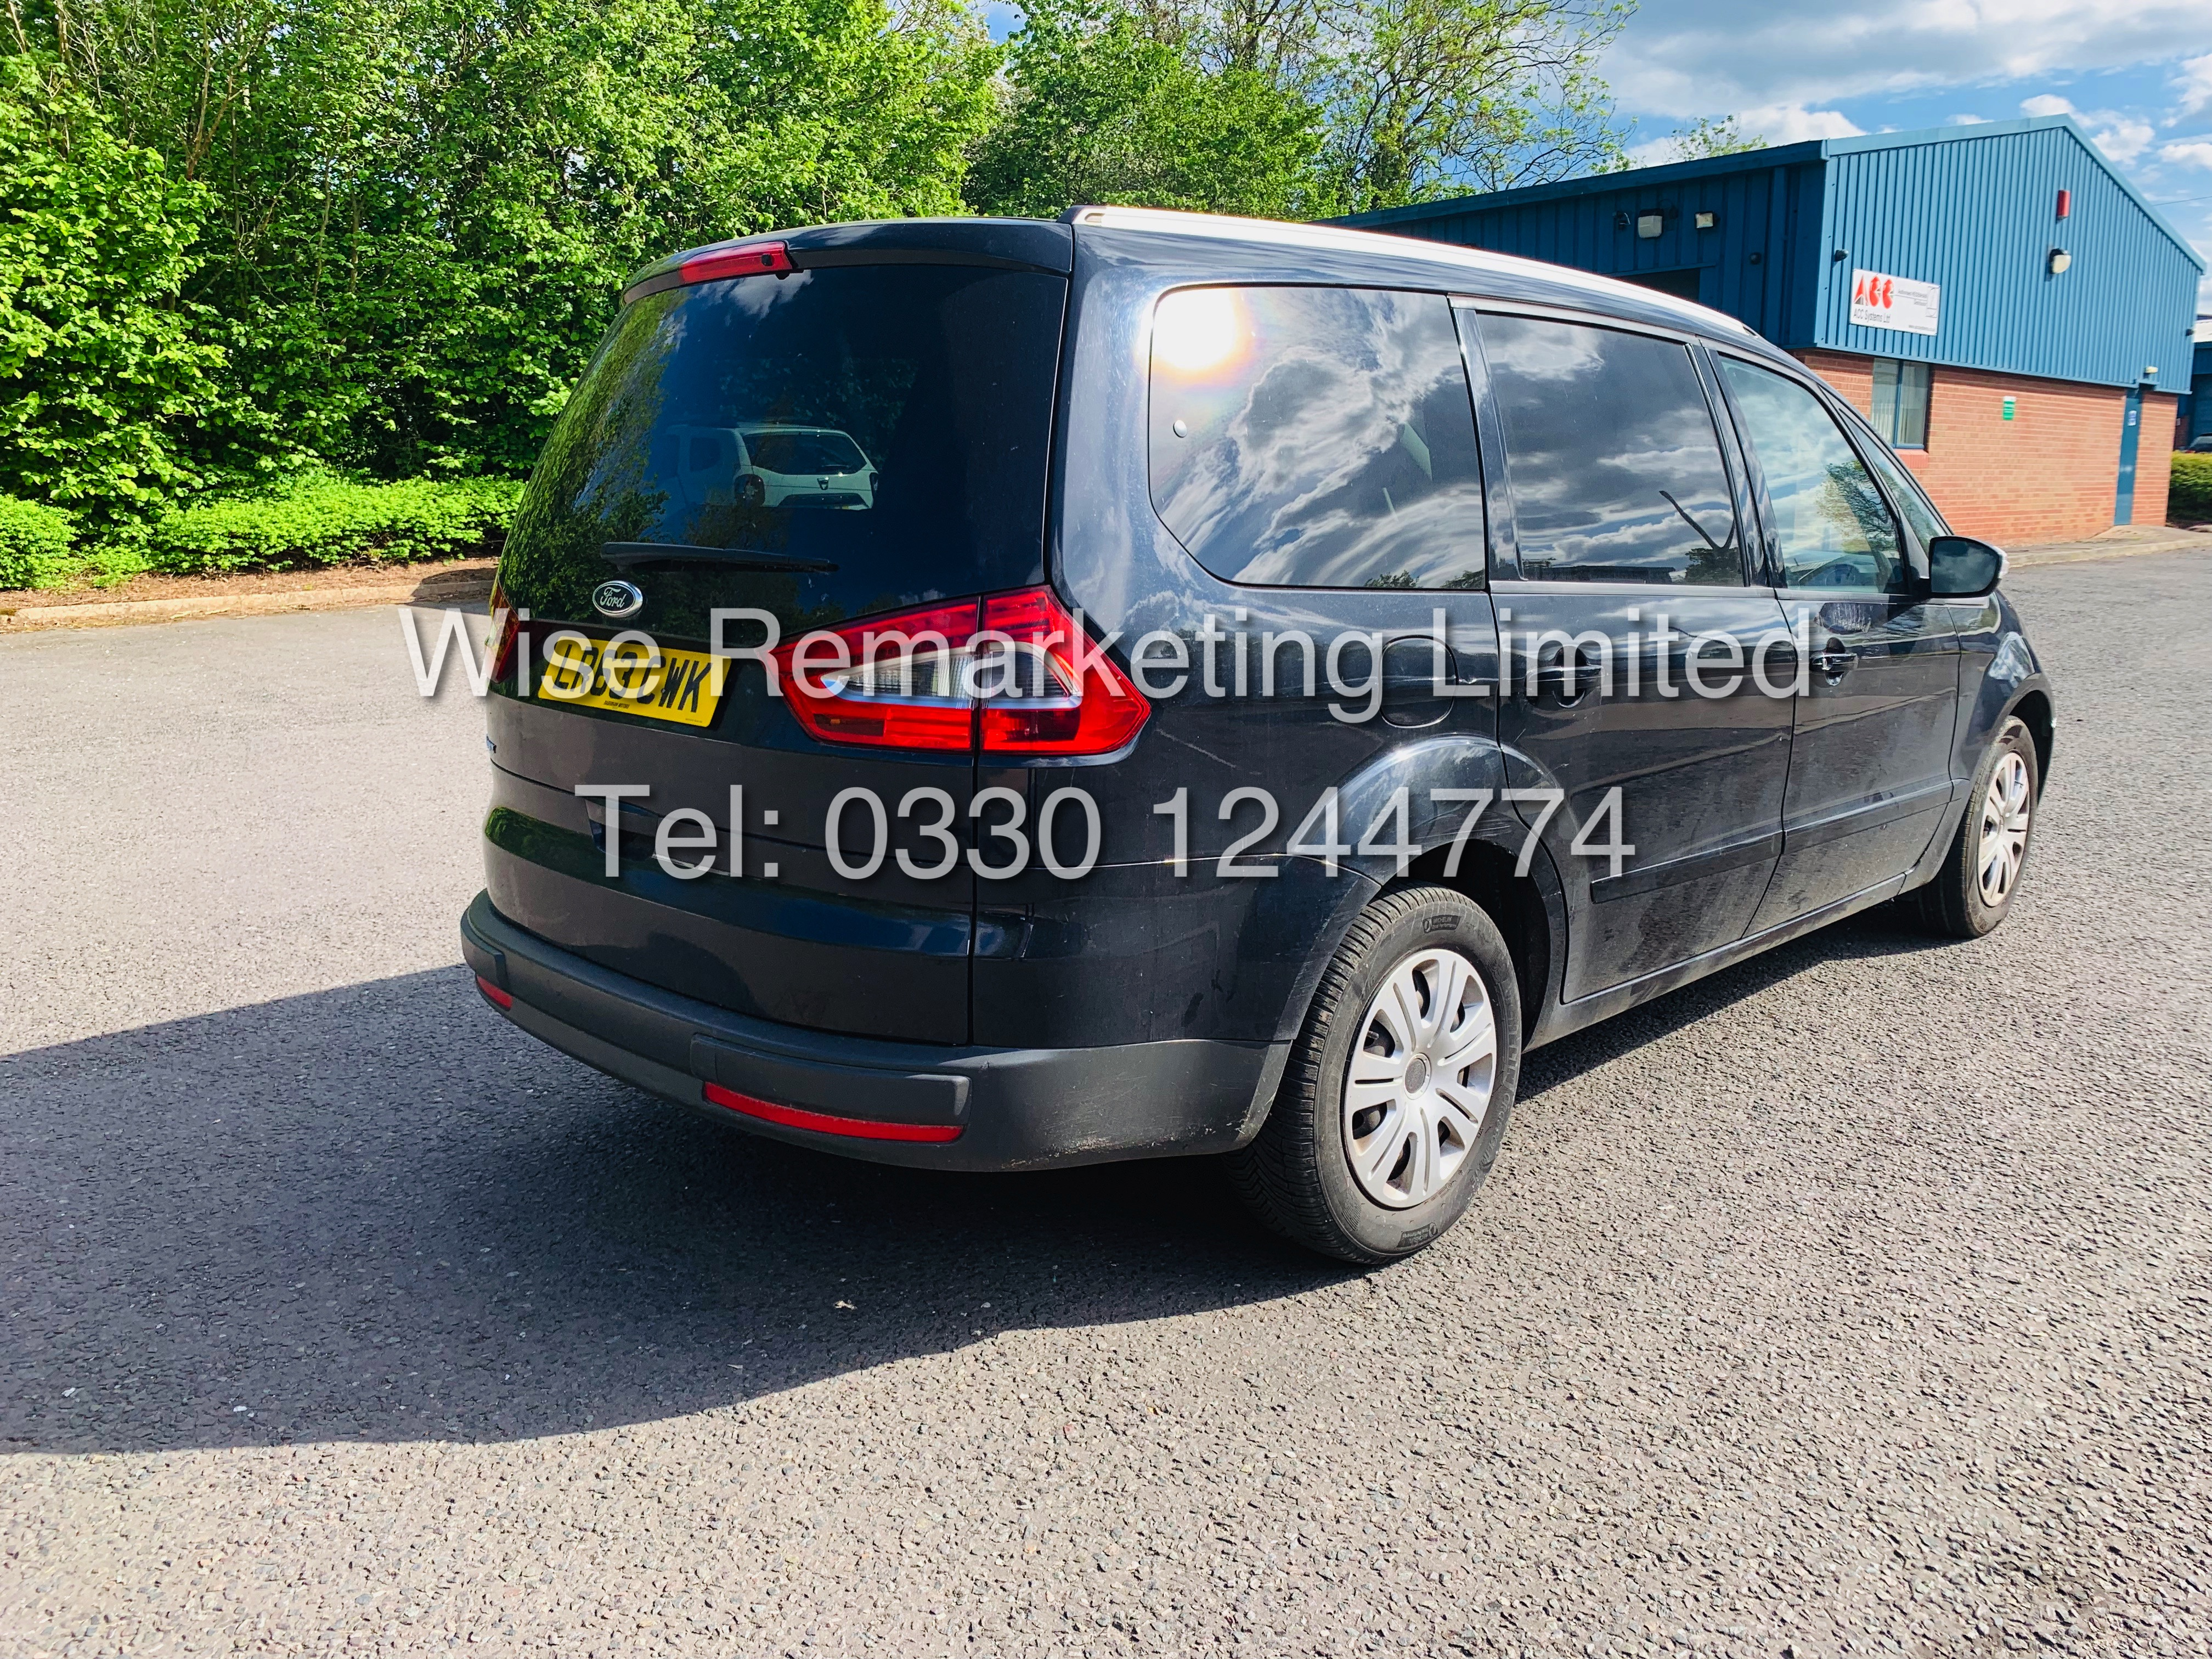 FORD GALAXY ZETEC 2.0L TDCI AUTO 7 SEATER MPV 63 REG *1 OWNER* - Image 4 of 18